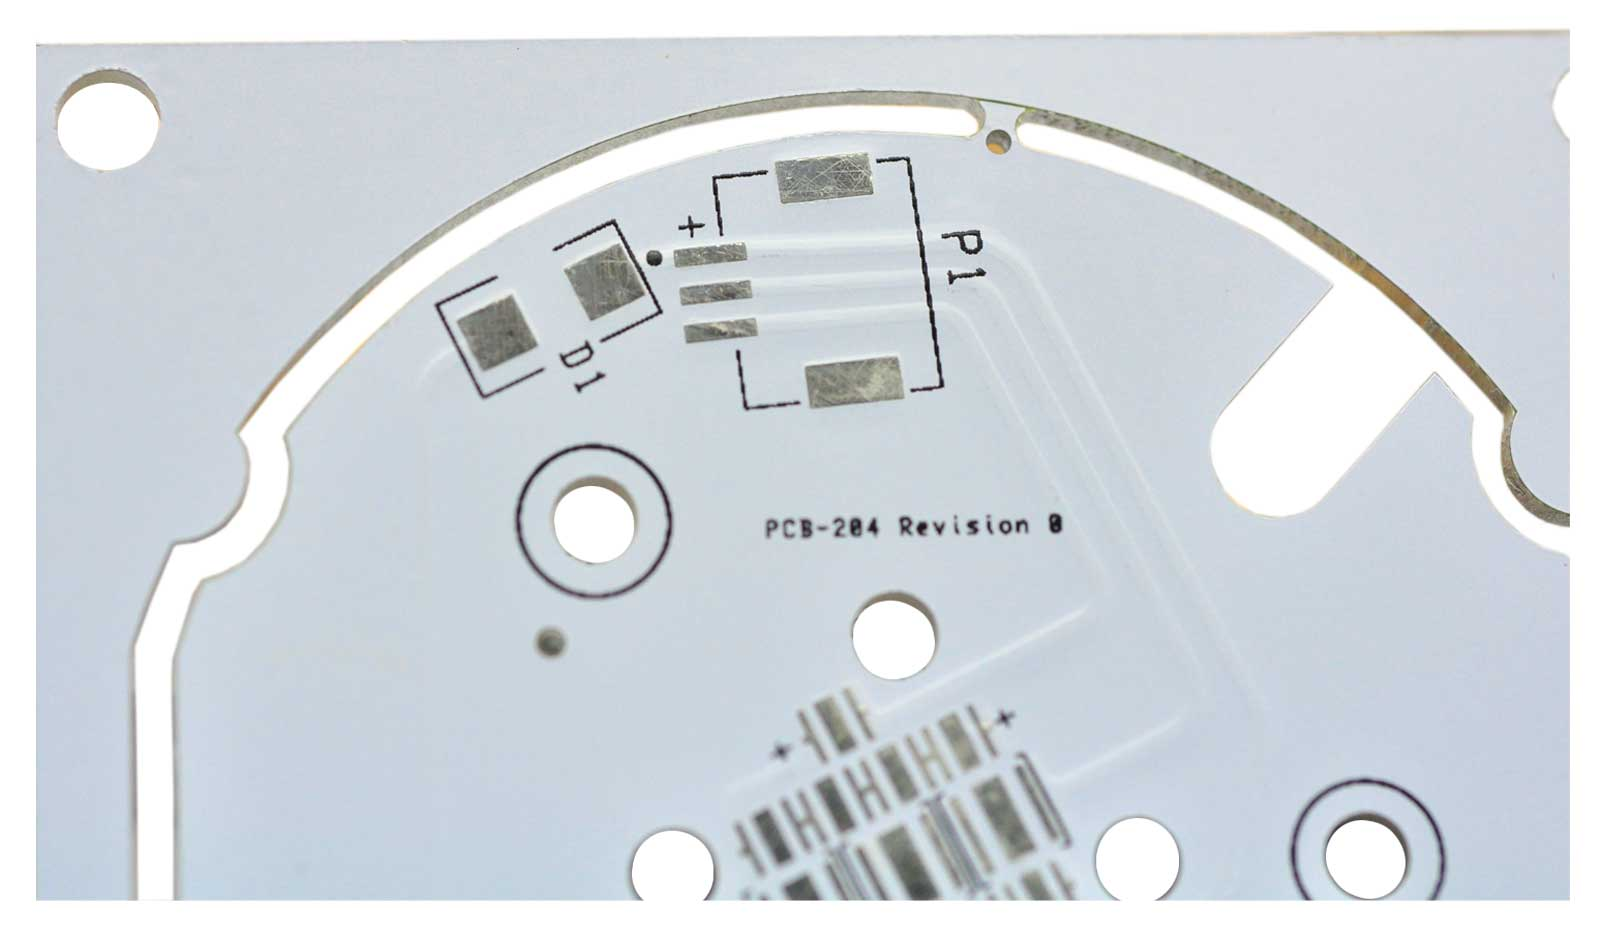 Bas13090 1 Layer Aluminum Core Pcb 3w Mcpcb Cree Led By Oz Flexible Printed Circuit Board And Cover Film Supplier 1layer Metal